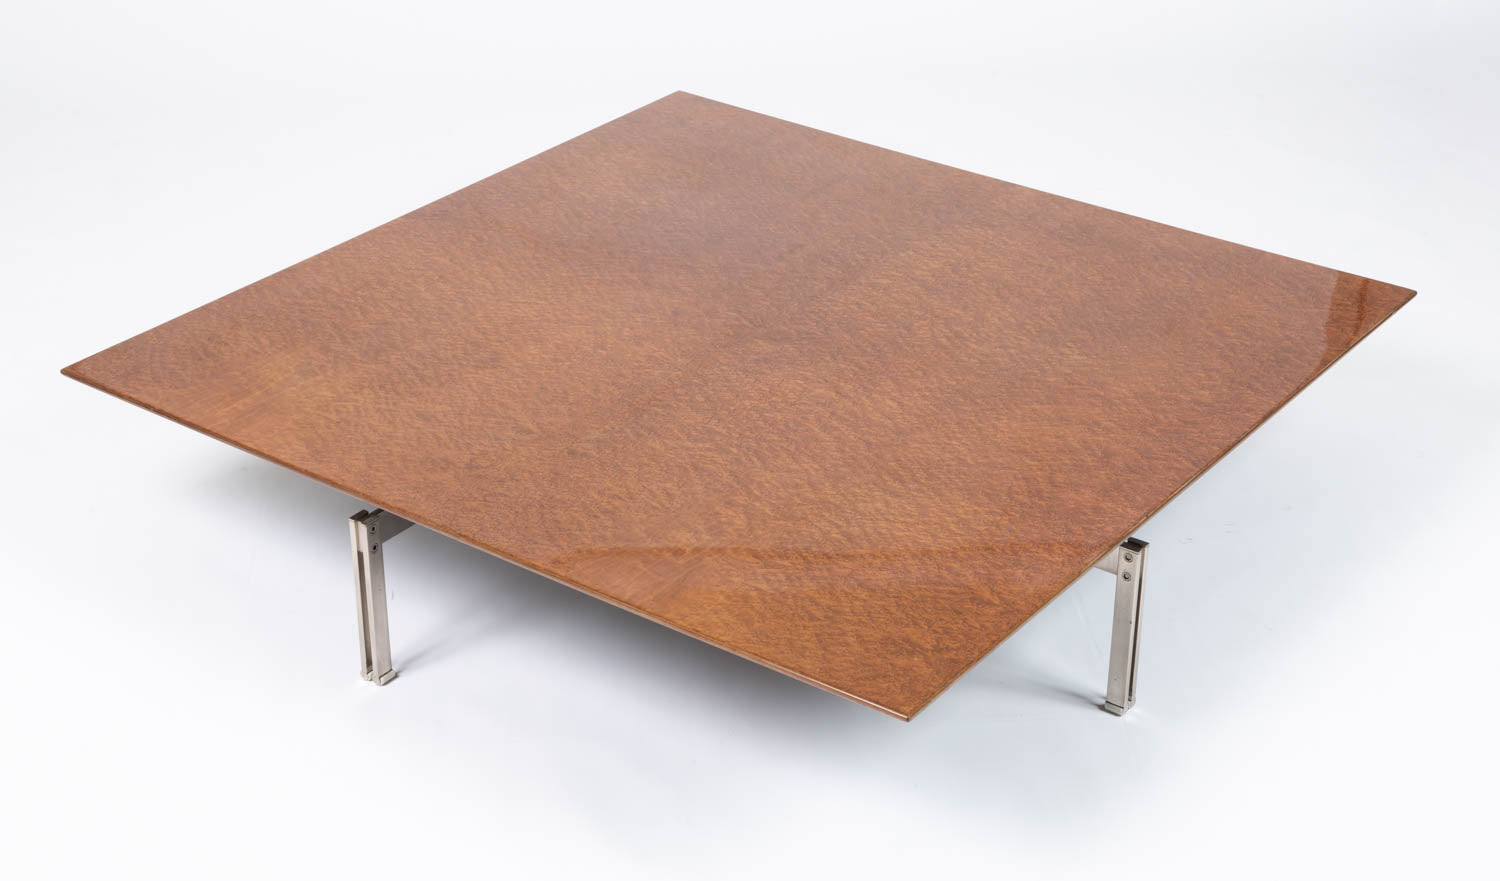 """Onda"" Square Coffee Table by Giovanni Offredi for Saporiti Italia"